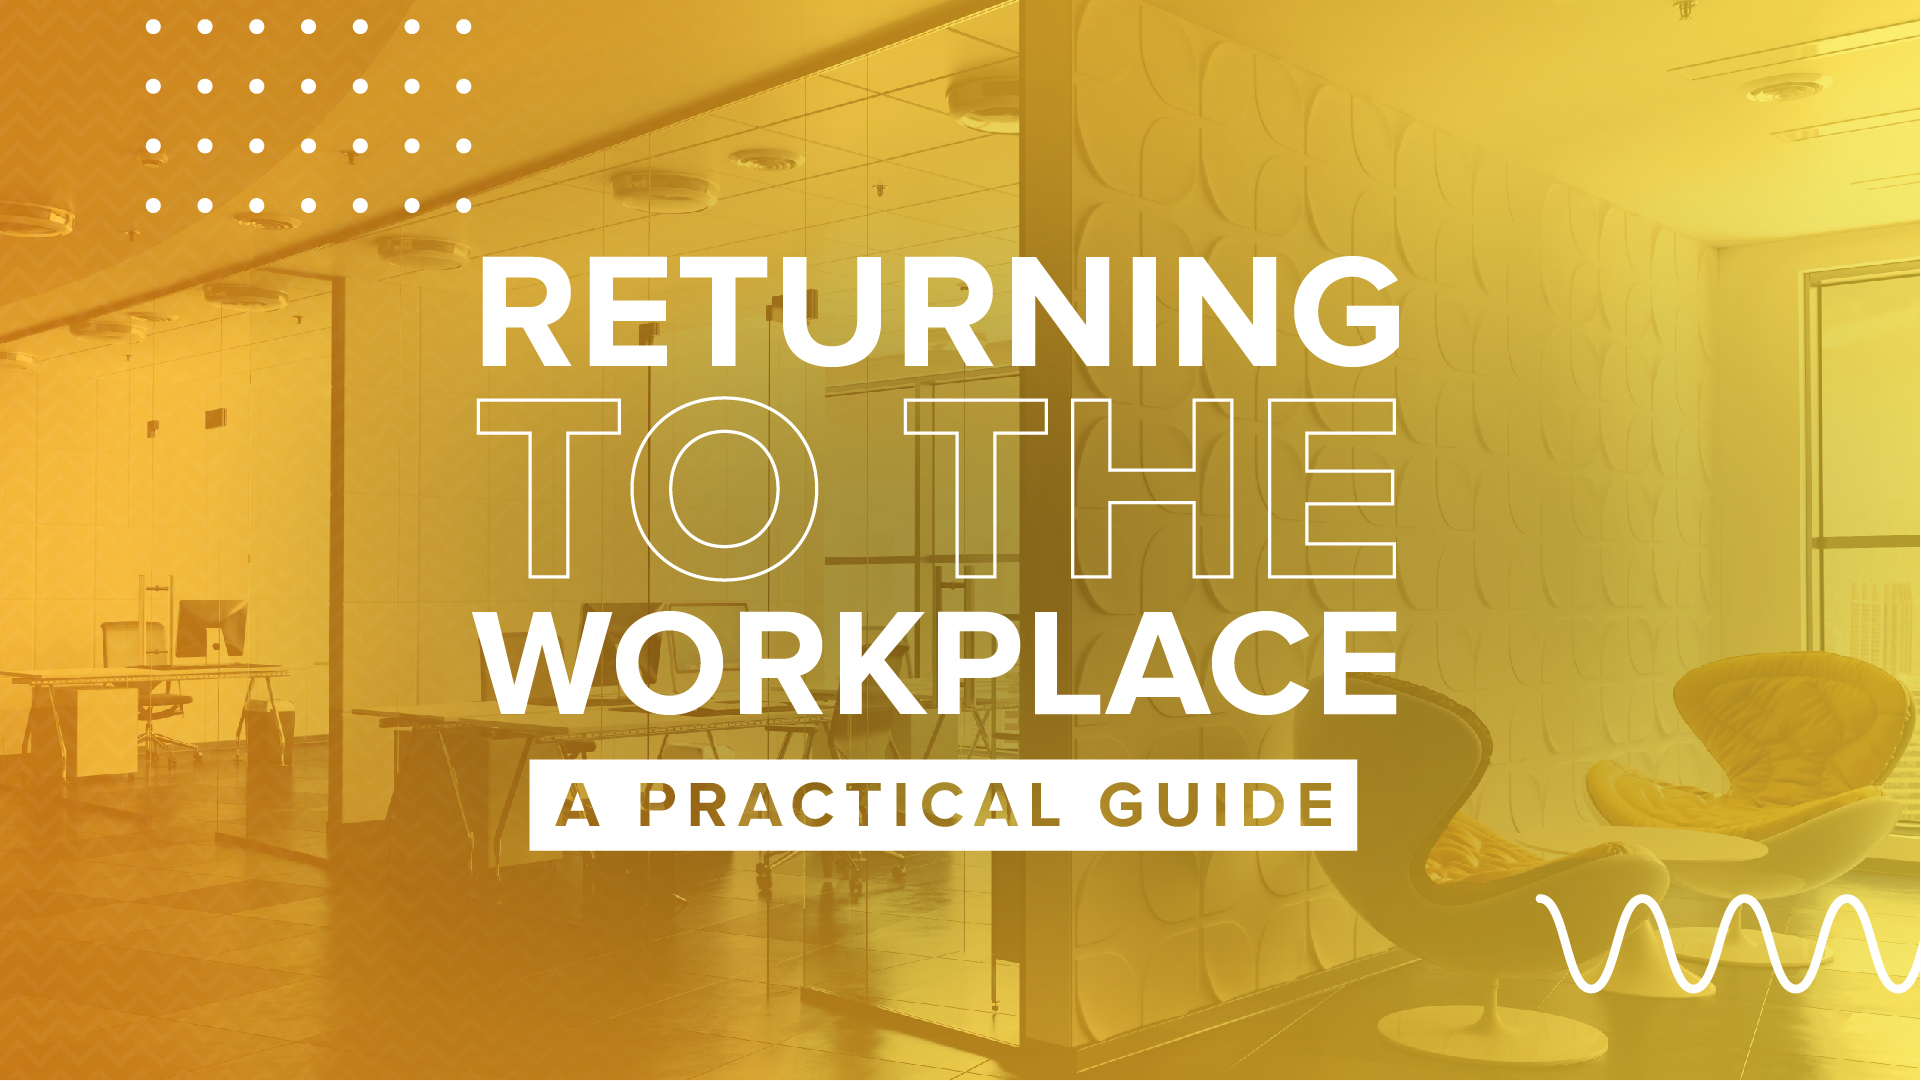 A Practical Guide For Returning To Work